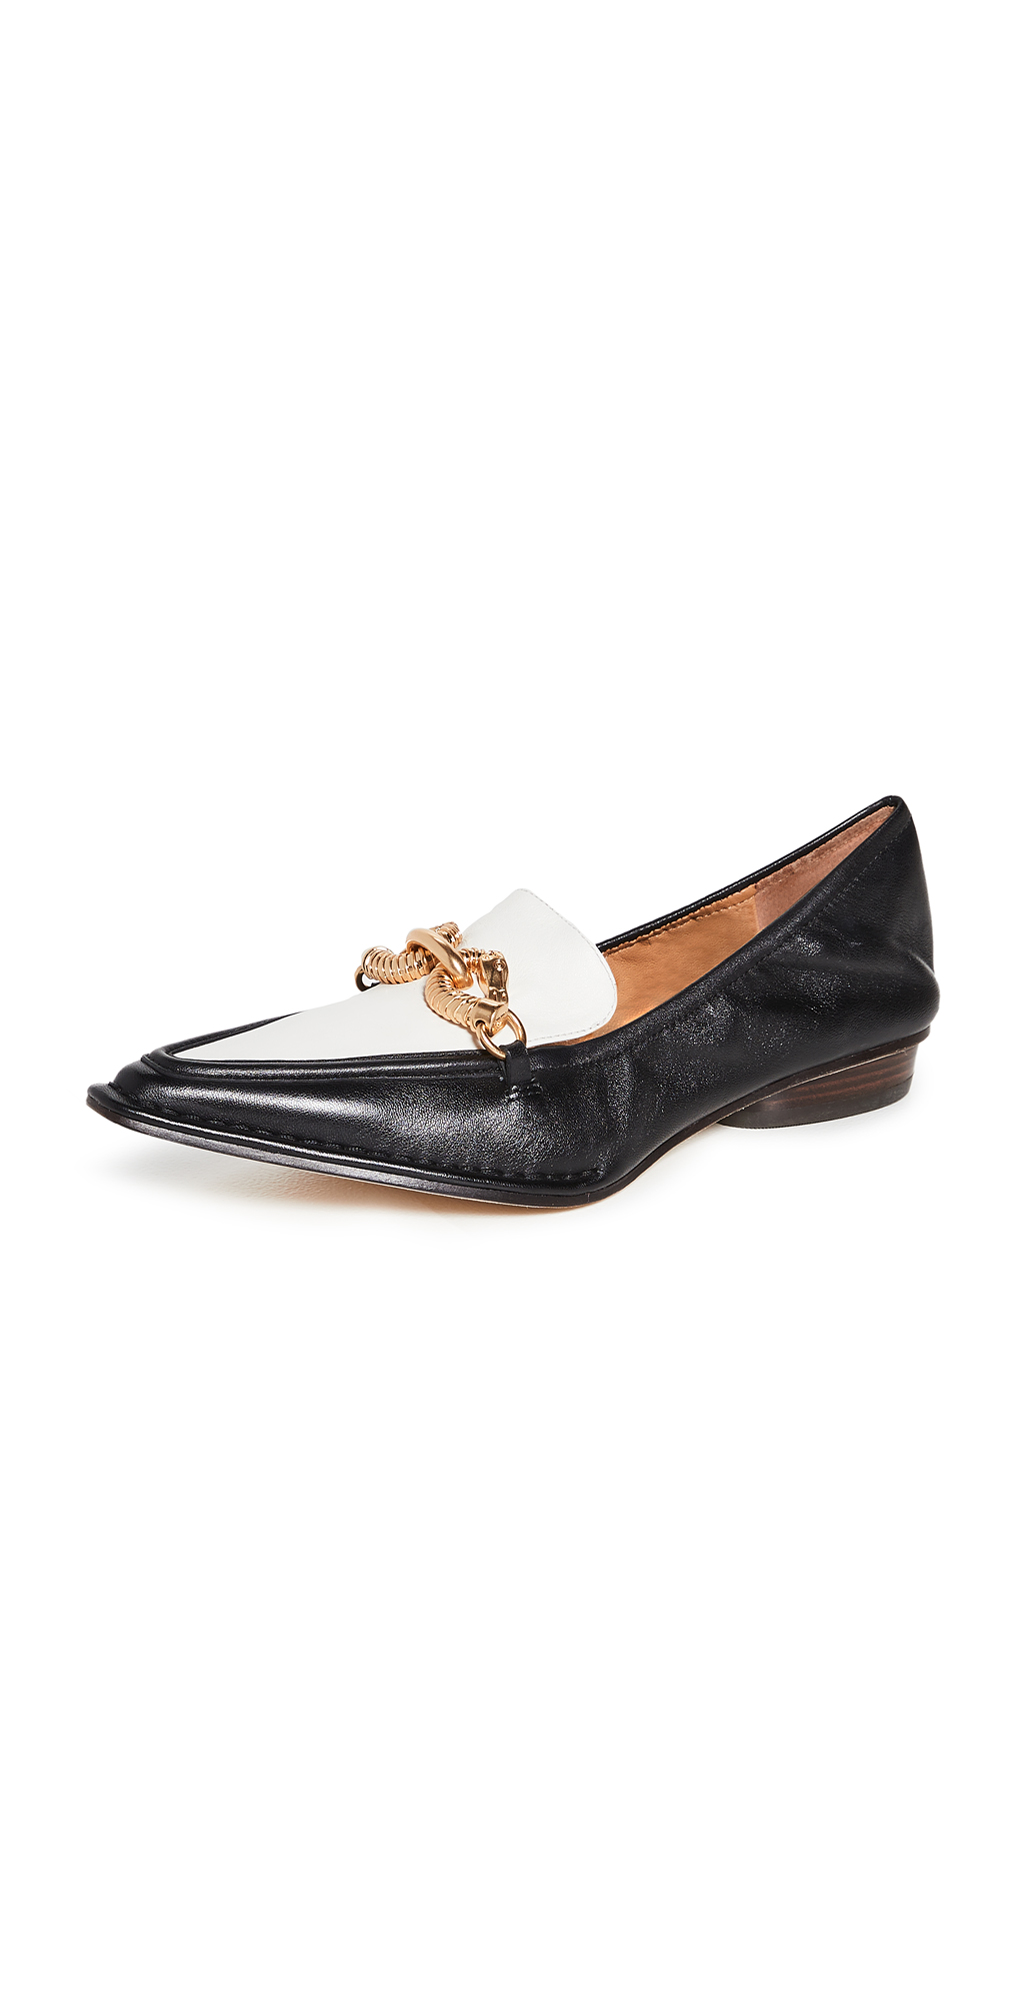 Tory Burch Jessa Pointy Toe 20mm Loafers